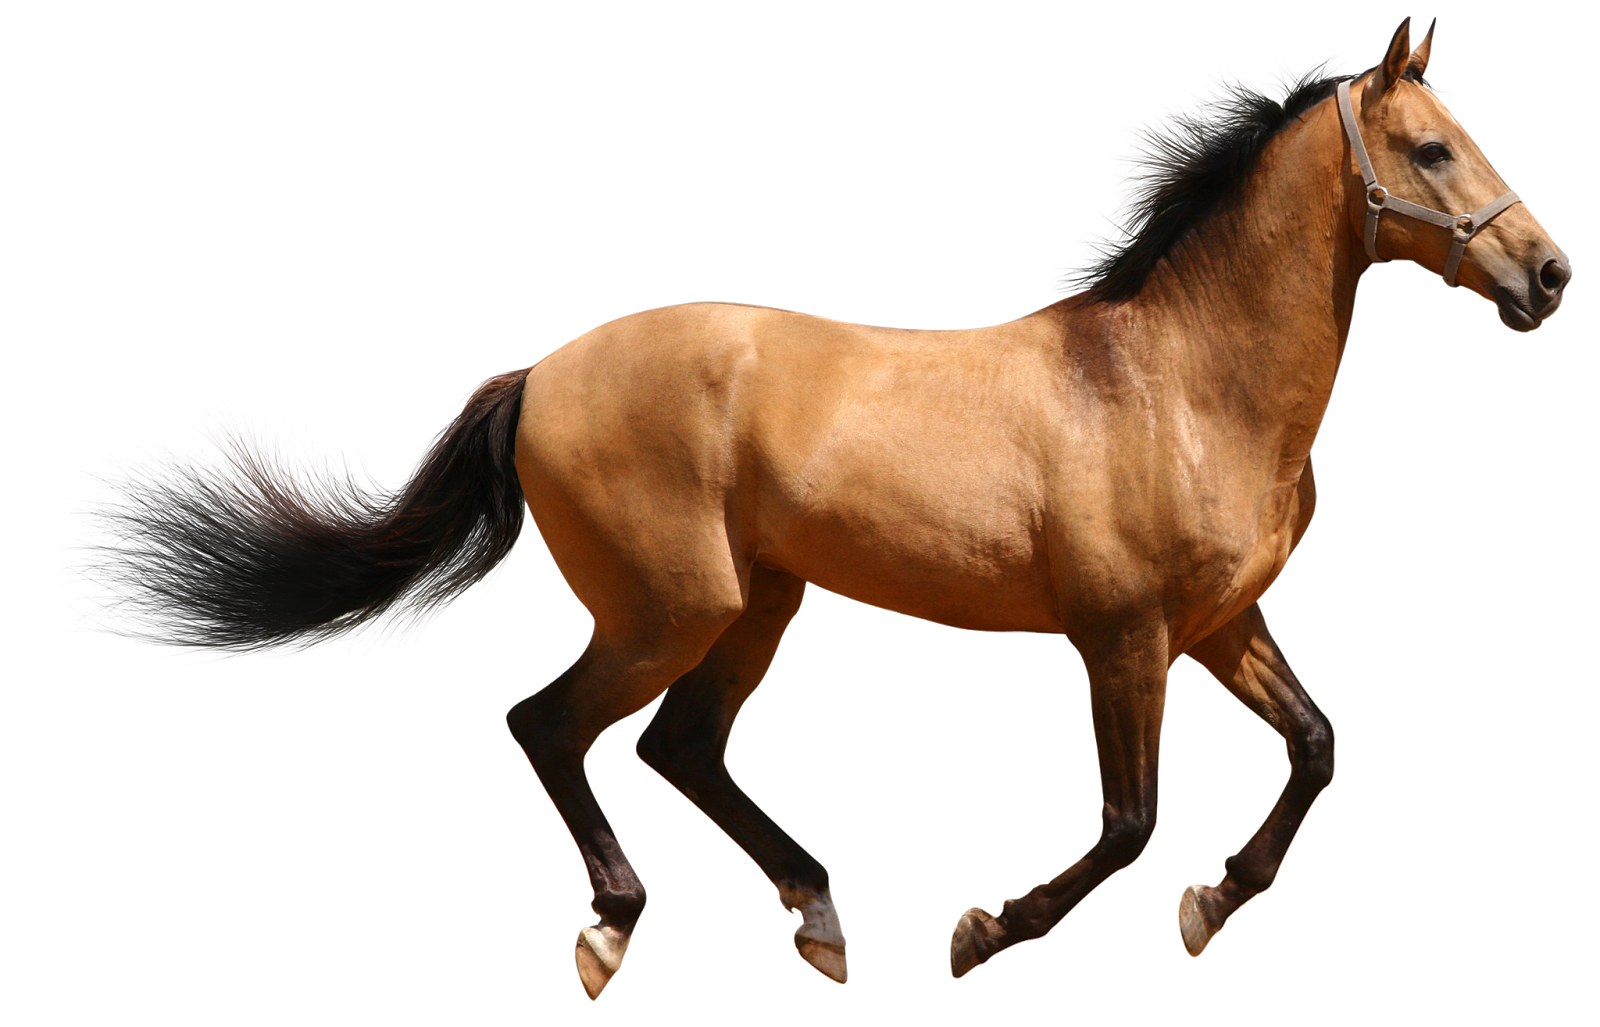 Horse 3d Animal Png image #22321 - Animal PNG - Animal HD PNG